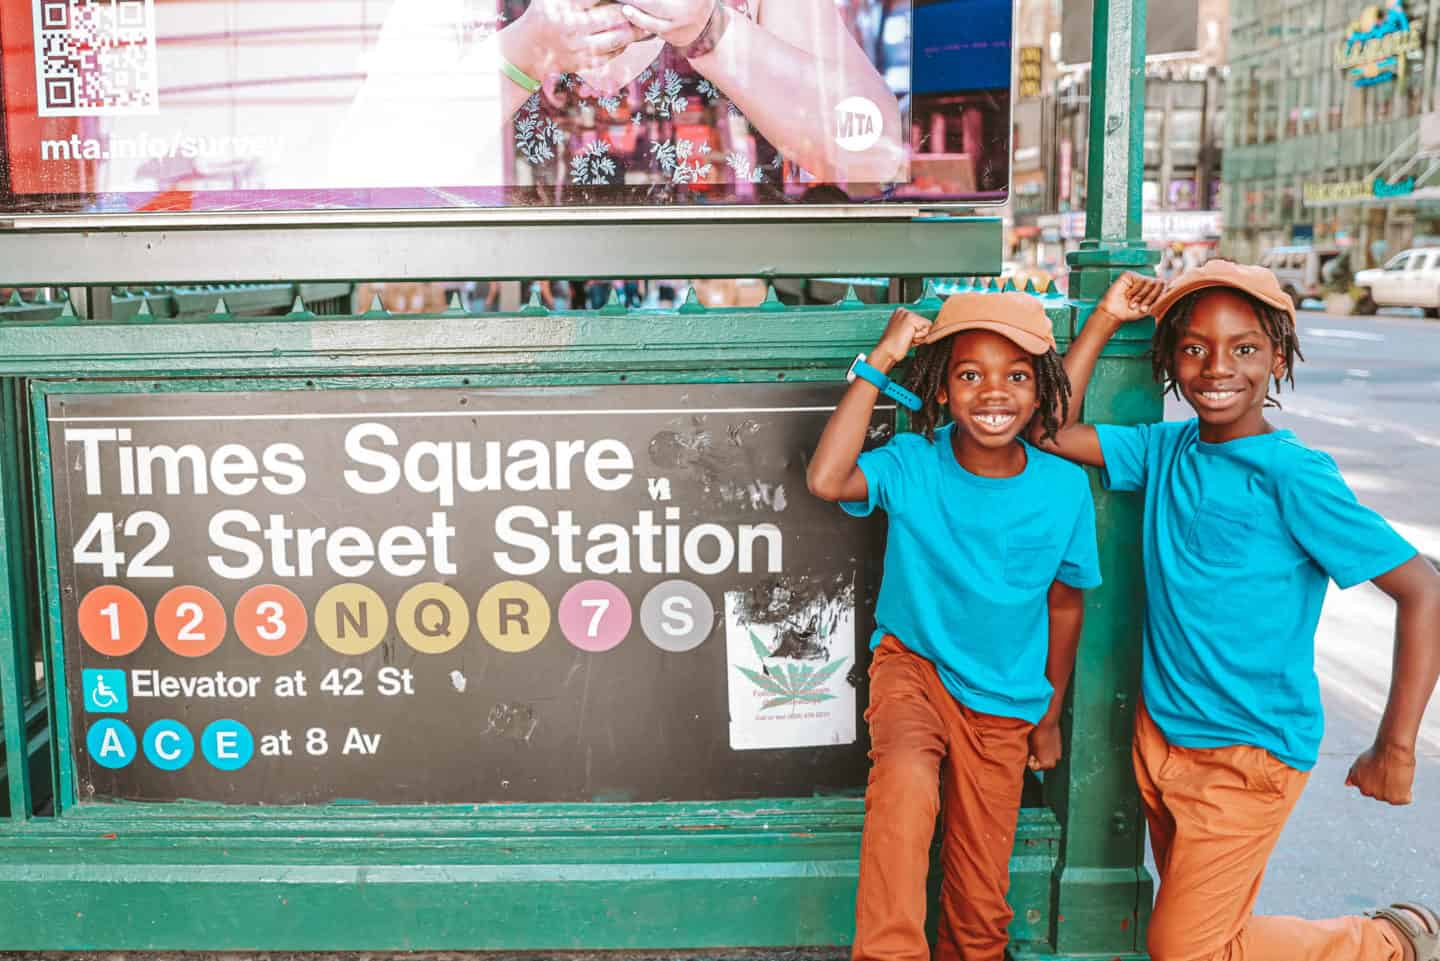 50+ Best Things to Do in New York City with Kids: Where To Stay, Play & Eat